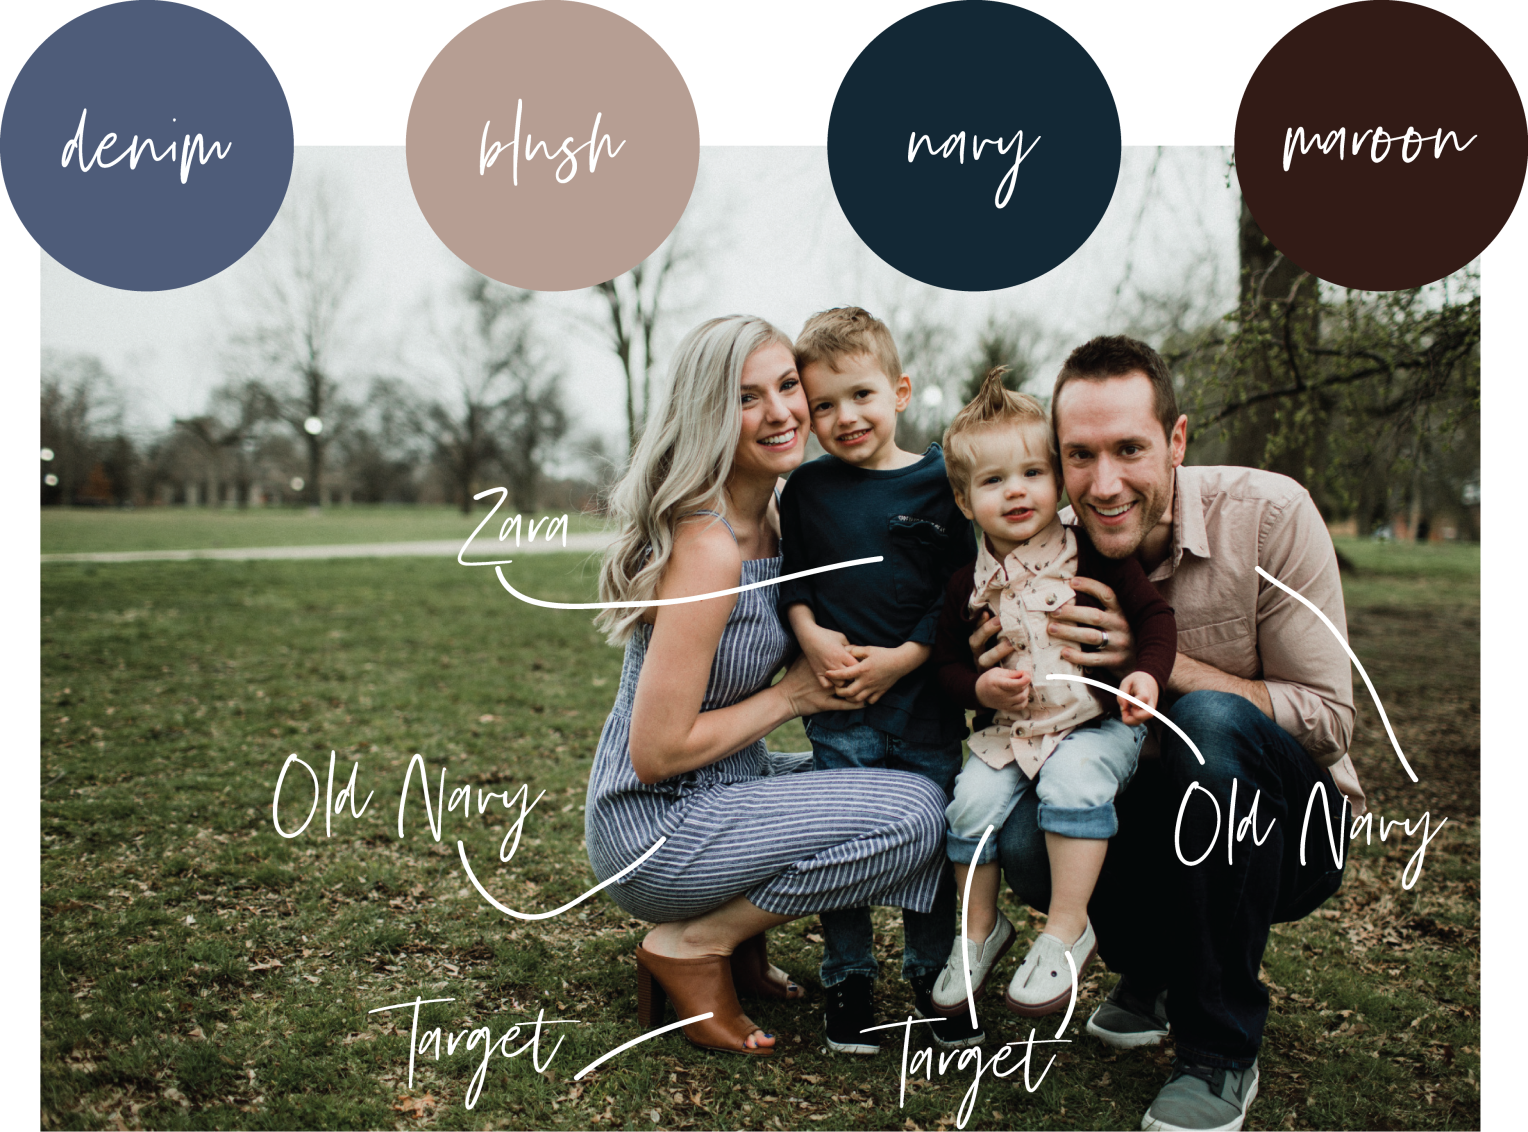 Family Photoshoot Style Guide #familyphotooutfits